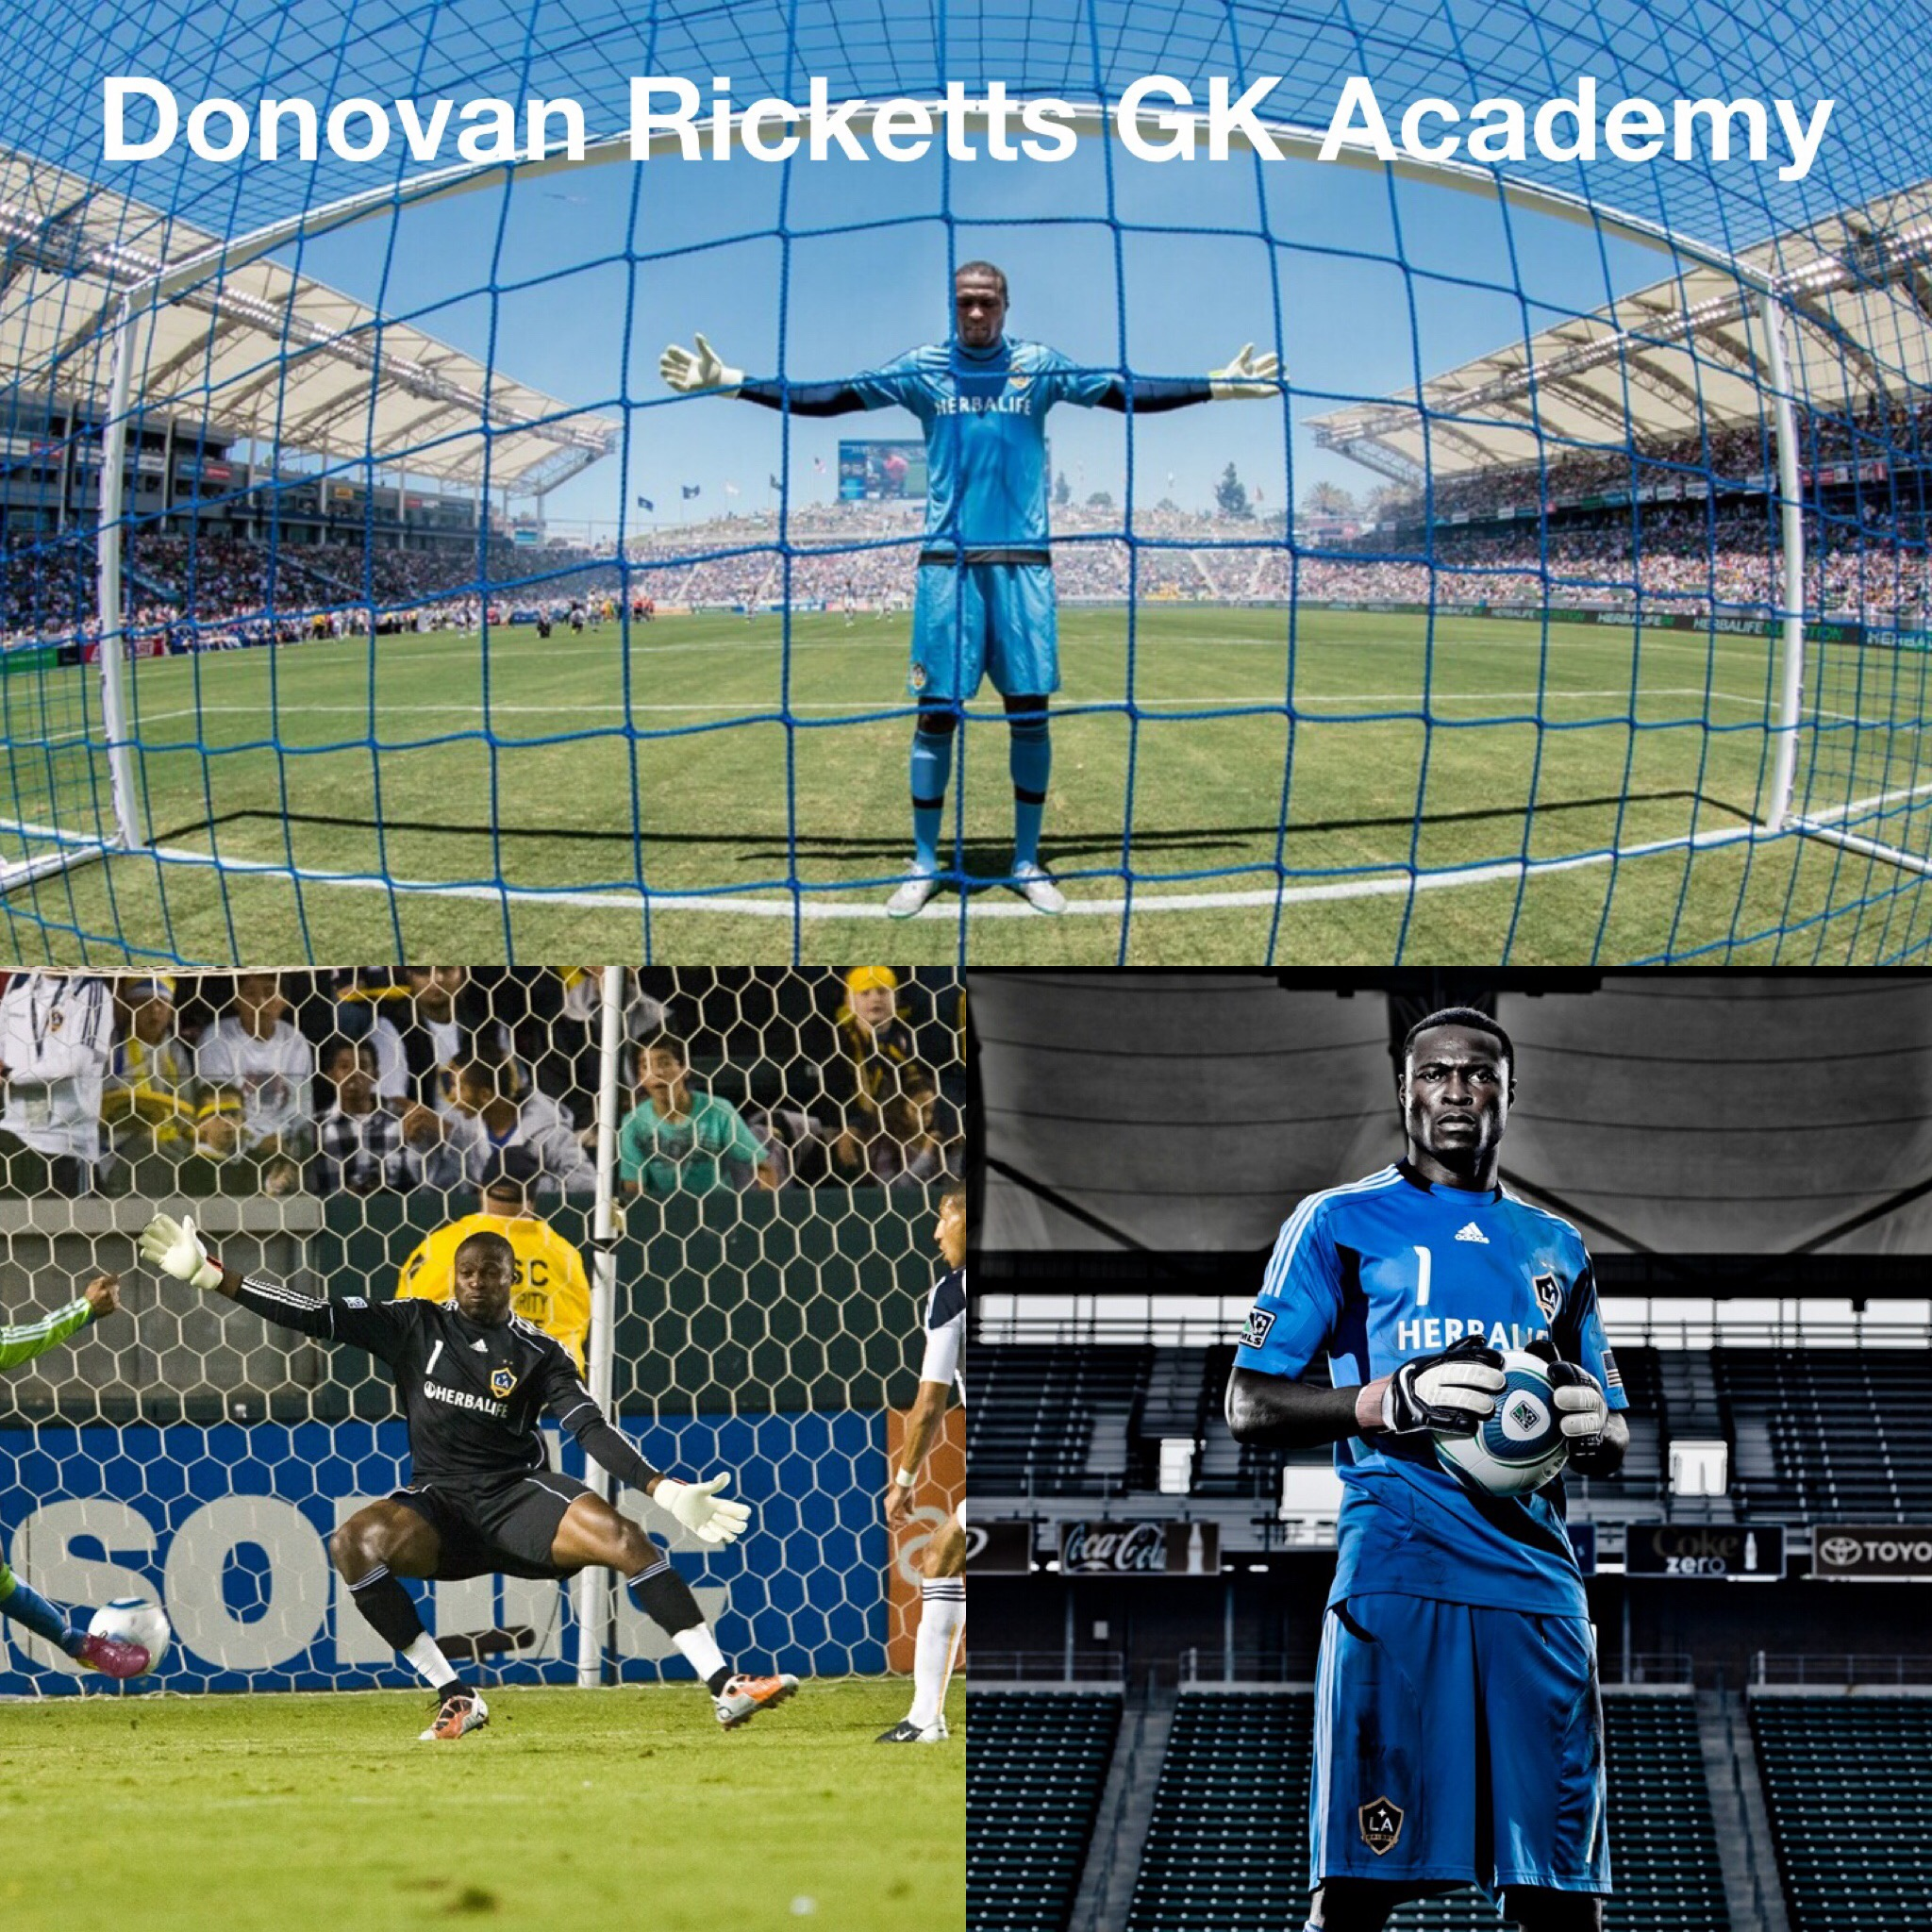 Donovan Ricketts GoalKeeper Academy